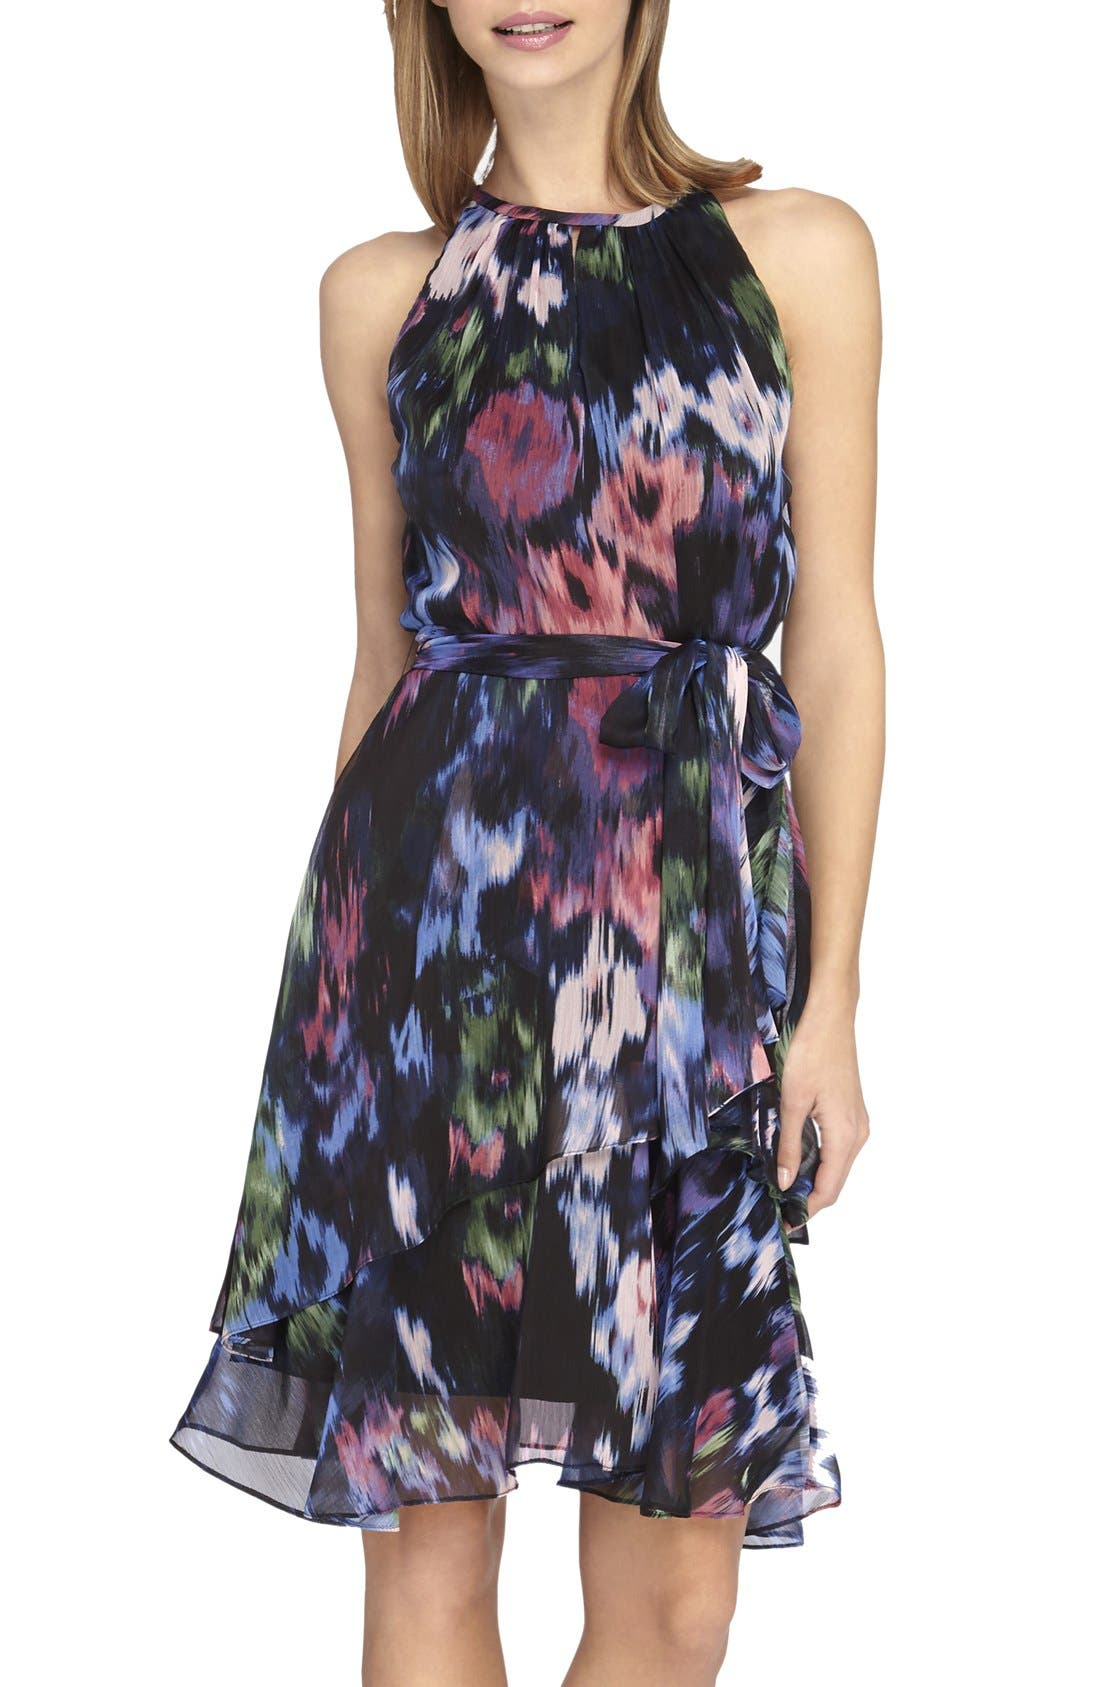 Print Chiffon Fit & Flare Dress,                         Main,                         color, Black/ Periwinkle/ Raspberry